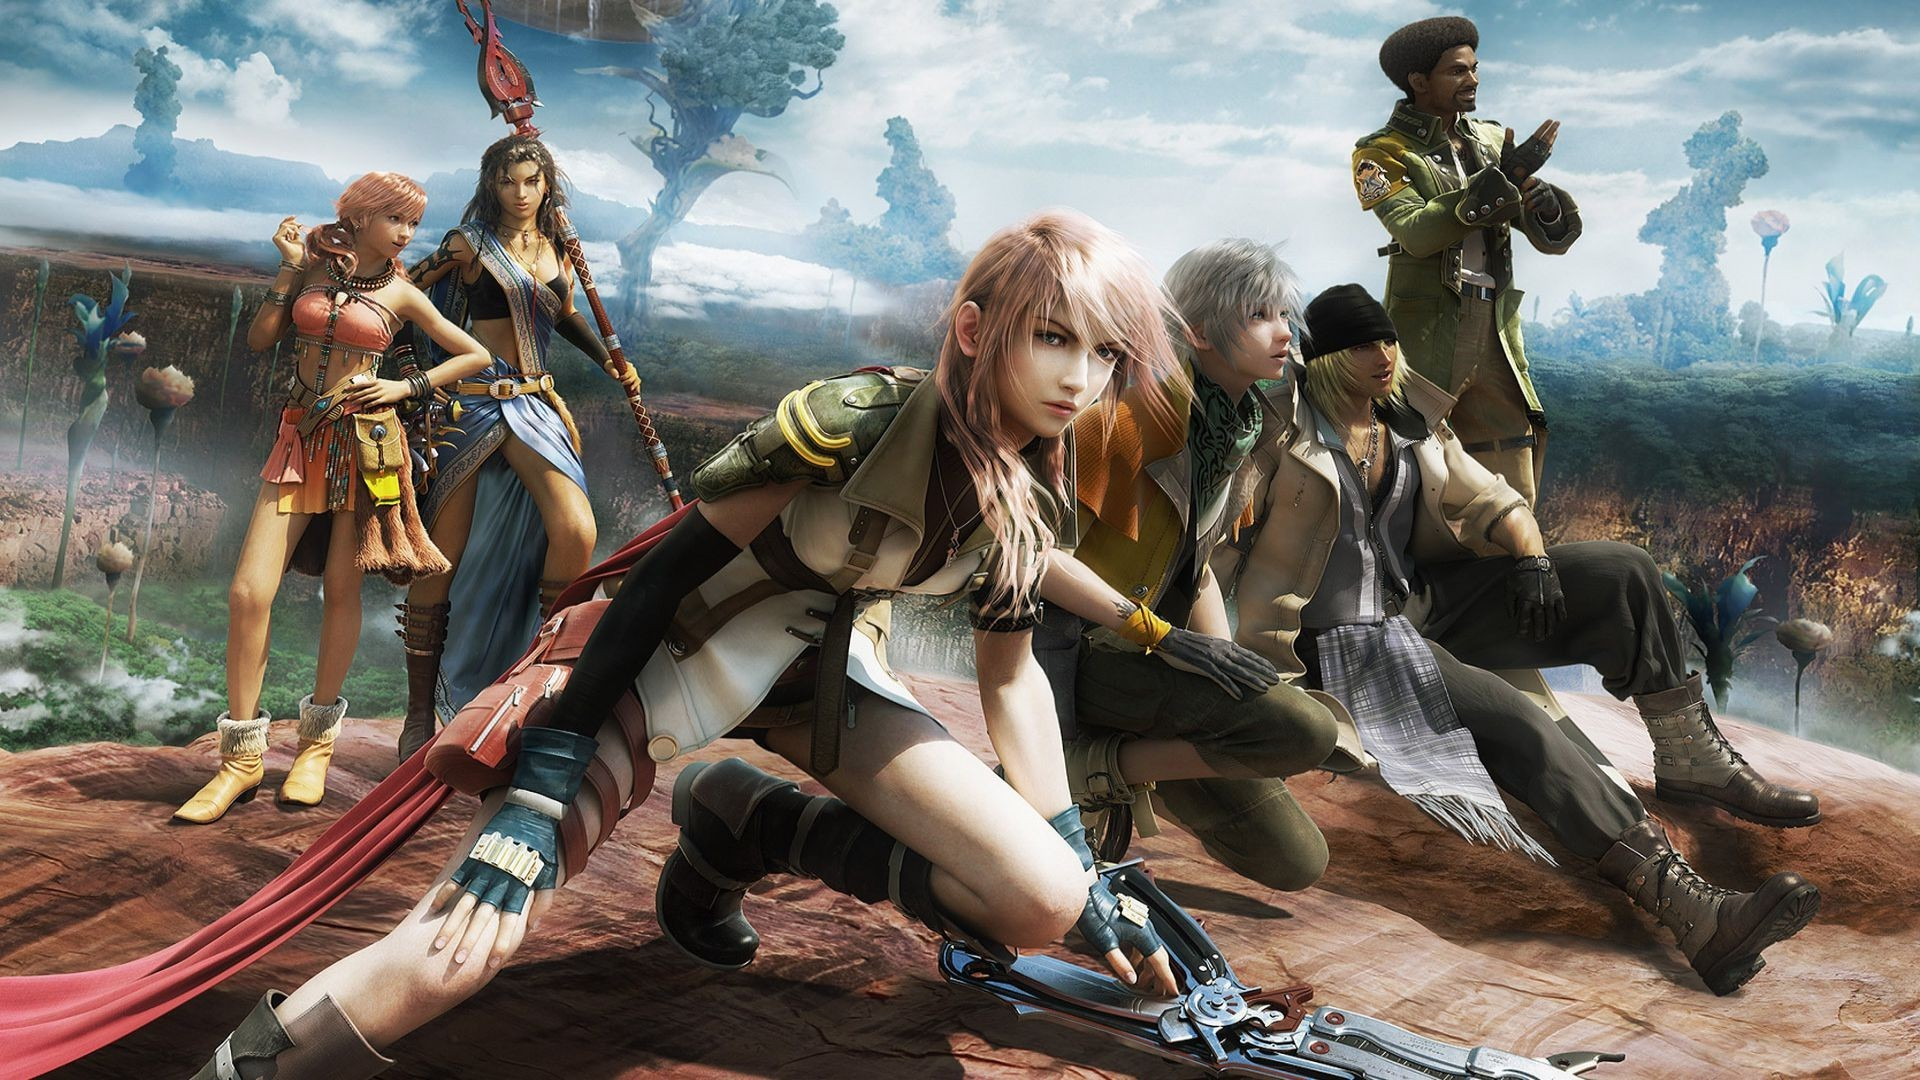 Lightning   Final Fantasy XIII wallpaper 7934 1920x1080